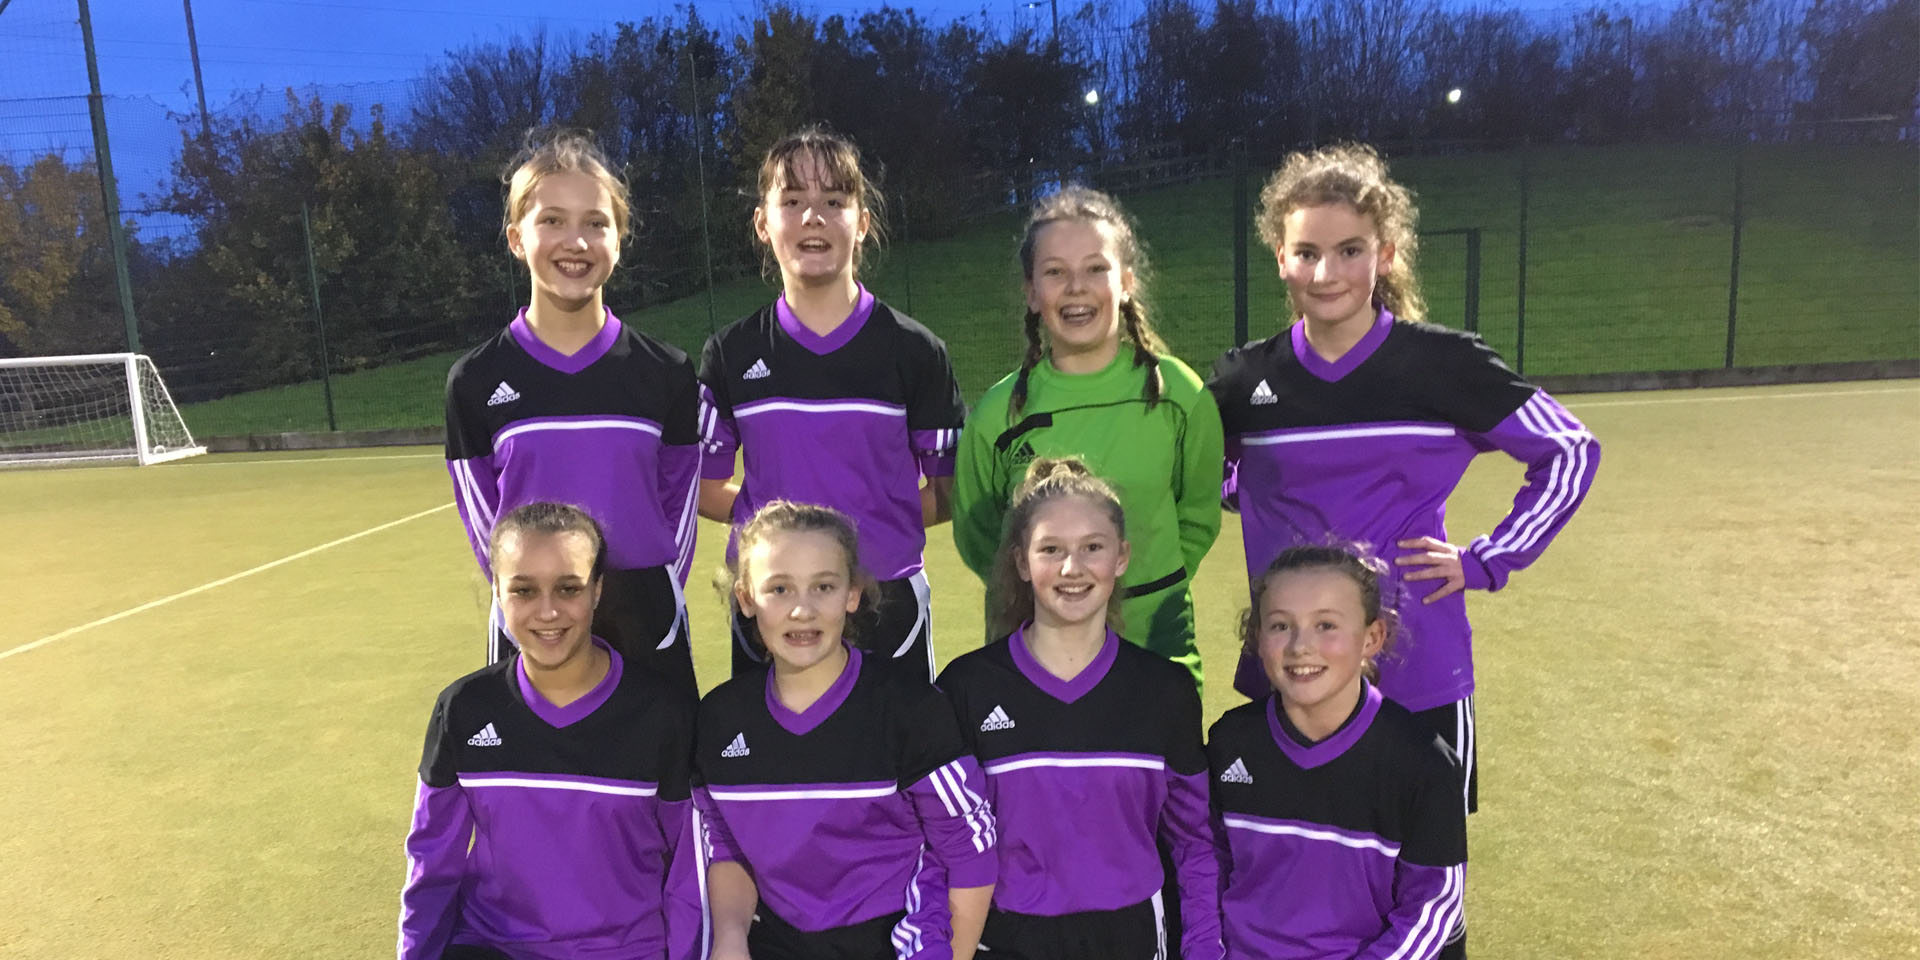 Under 13 Football Team Reclaims Trophy in Tranmere Rovers League Cup Win